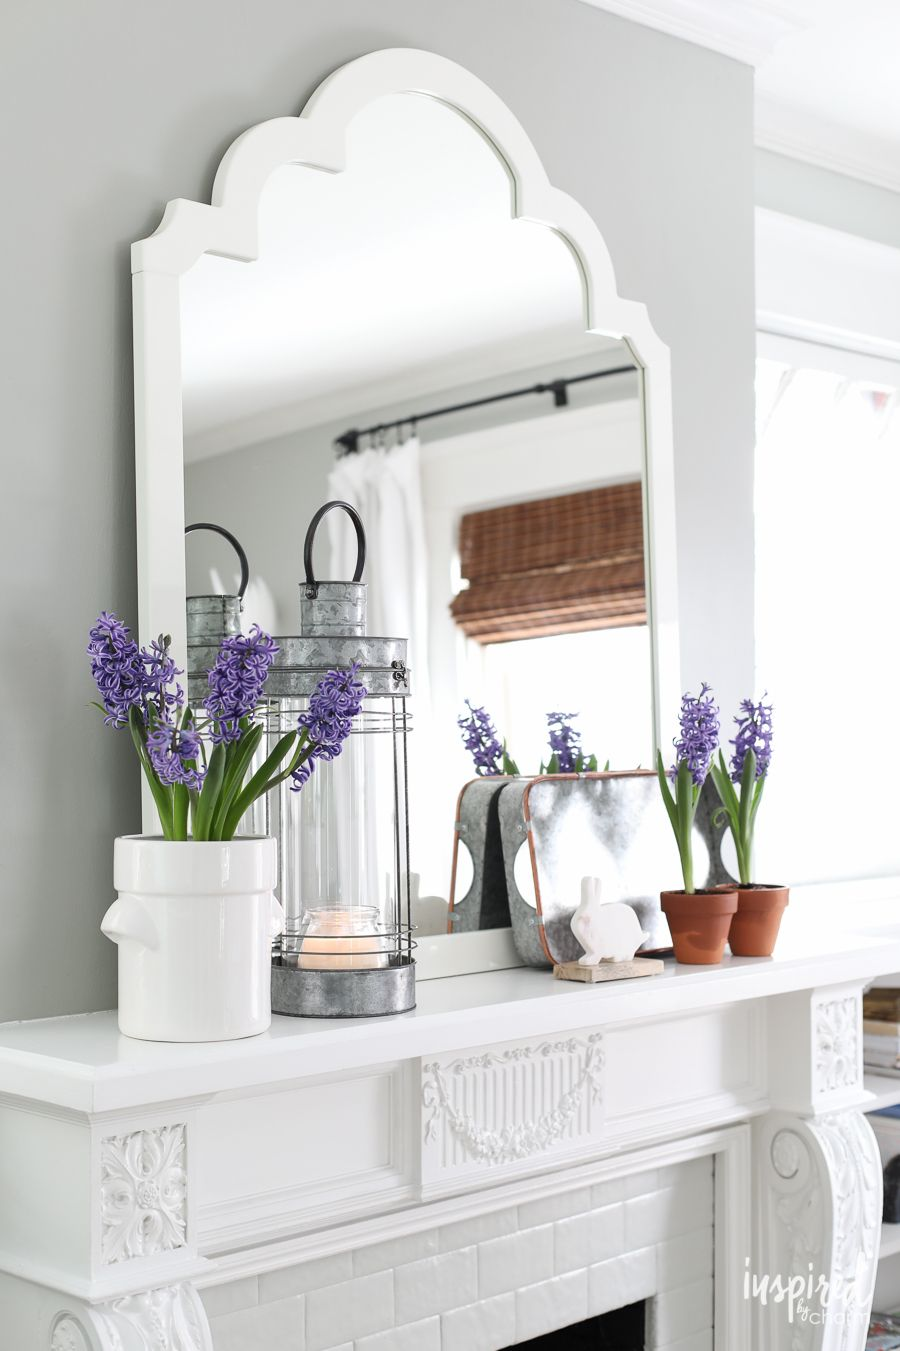 Feel Inspired By The New Season With Two Spring Mantel Ideas To Help  Freshen Up Your. Mantel IdeenKaminideenKaminverkleidungenWillkommen FrühlingOster  ...